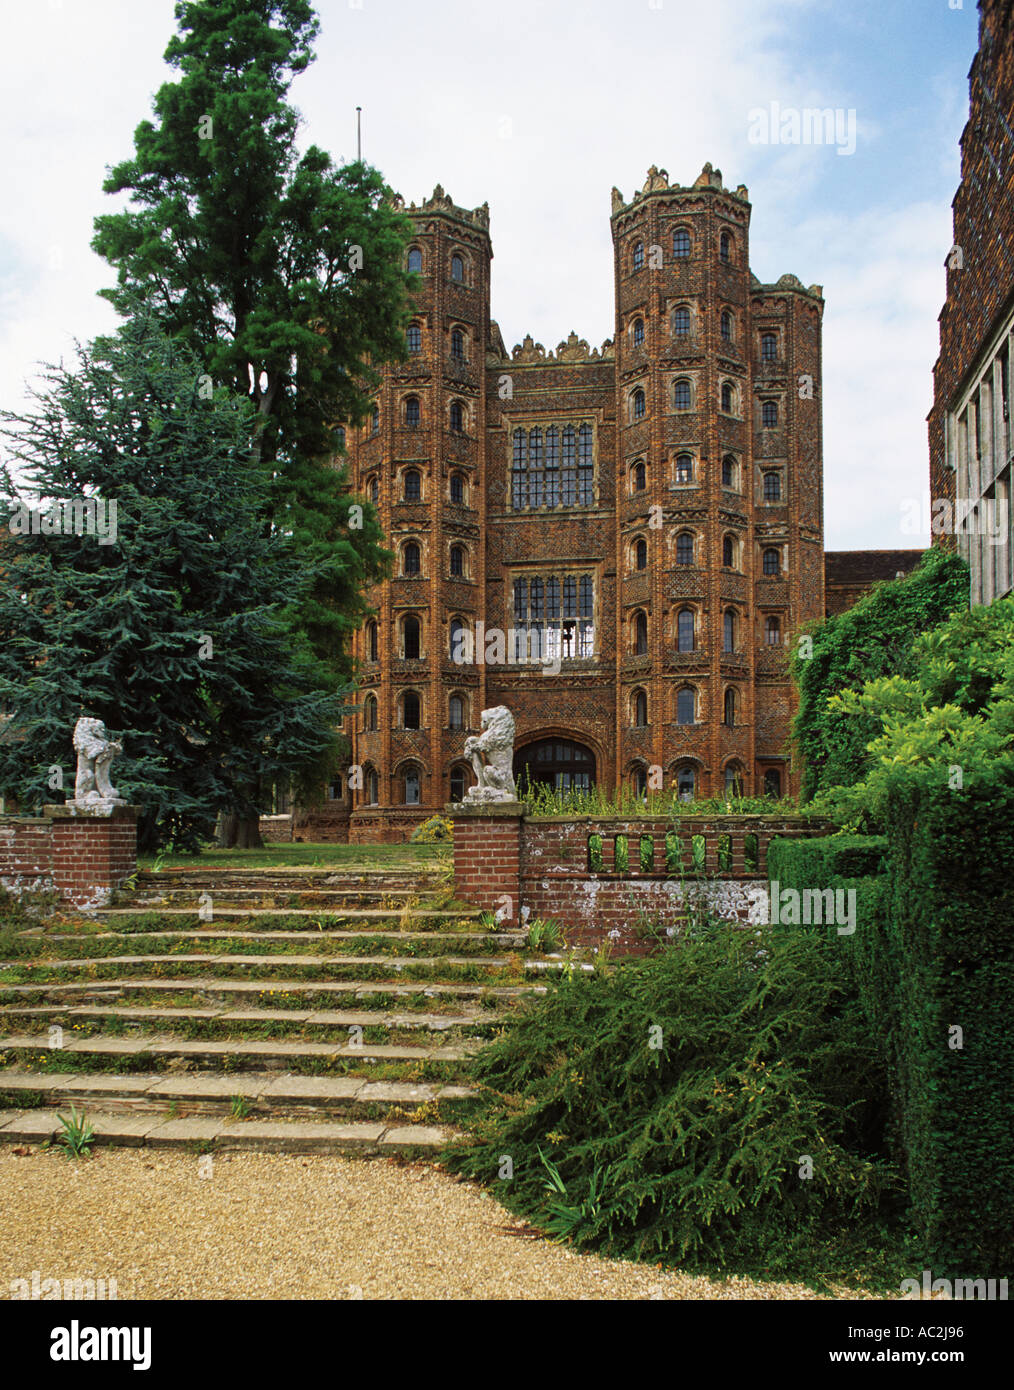 The 80 foot Tower at Layer Marney built in 1500 by Sir Henry Marney who died in 1523 7 miles SW of Colchester - Stock Image